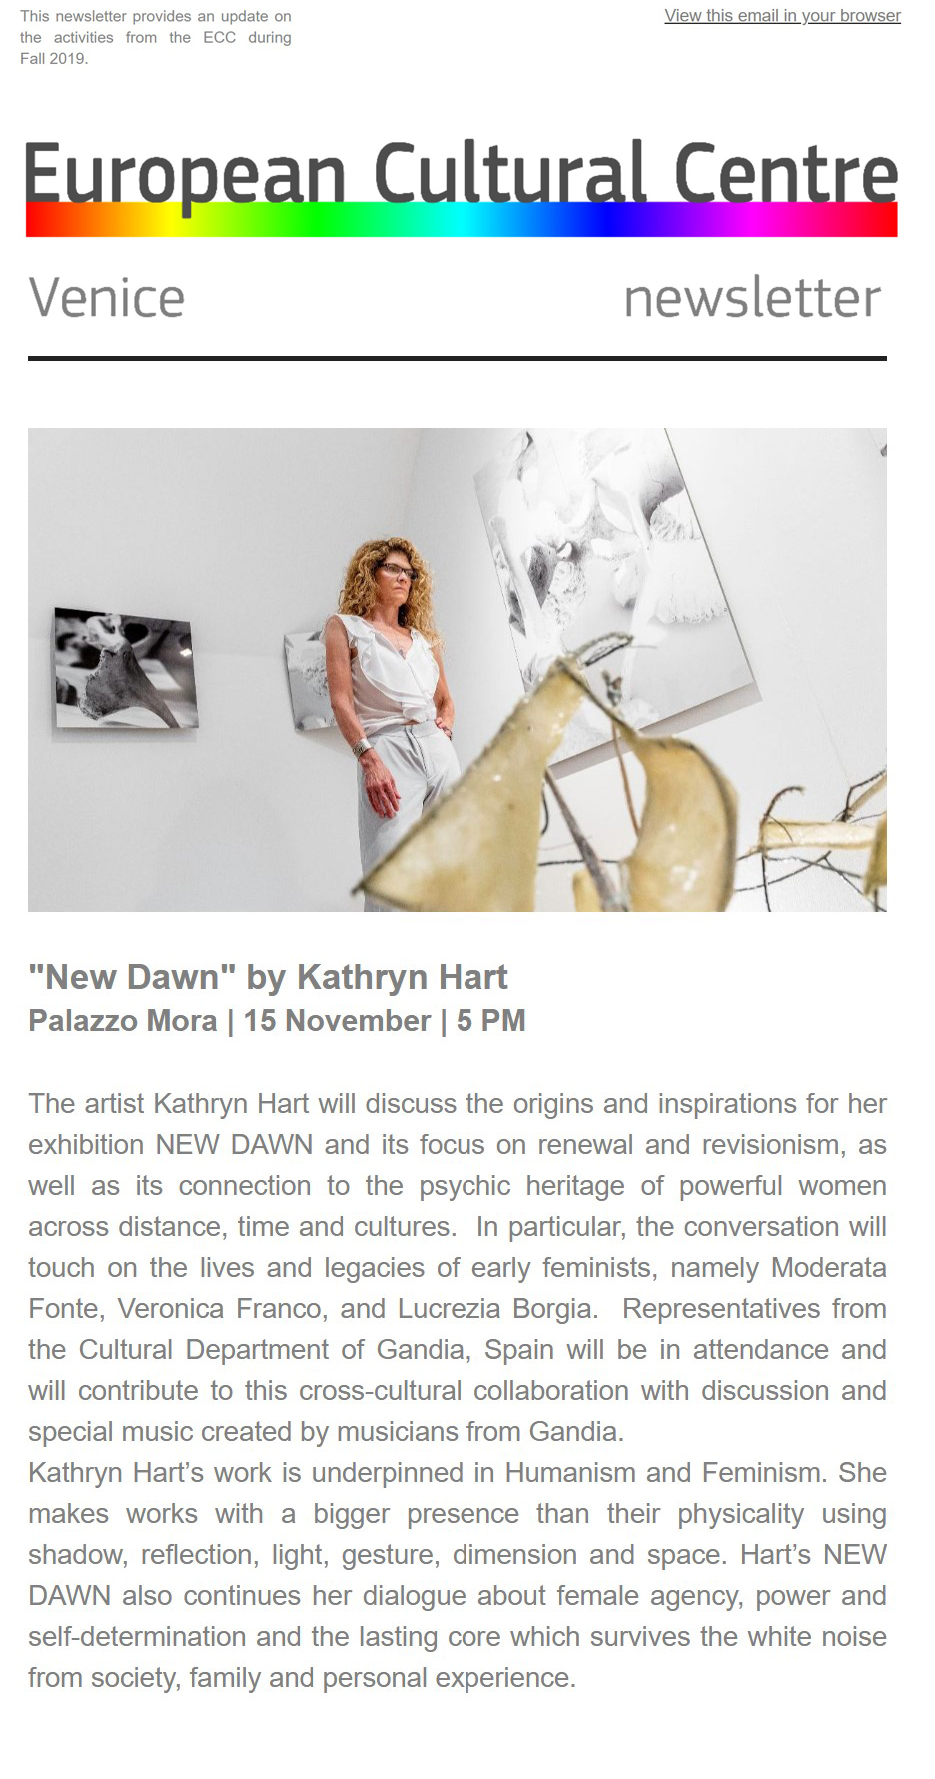 Kathryn Hart: NEW DAWN Discussion, European Cultural Centre, Palazzo Mora 15 November 2019